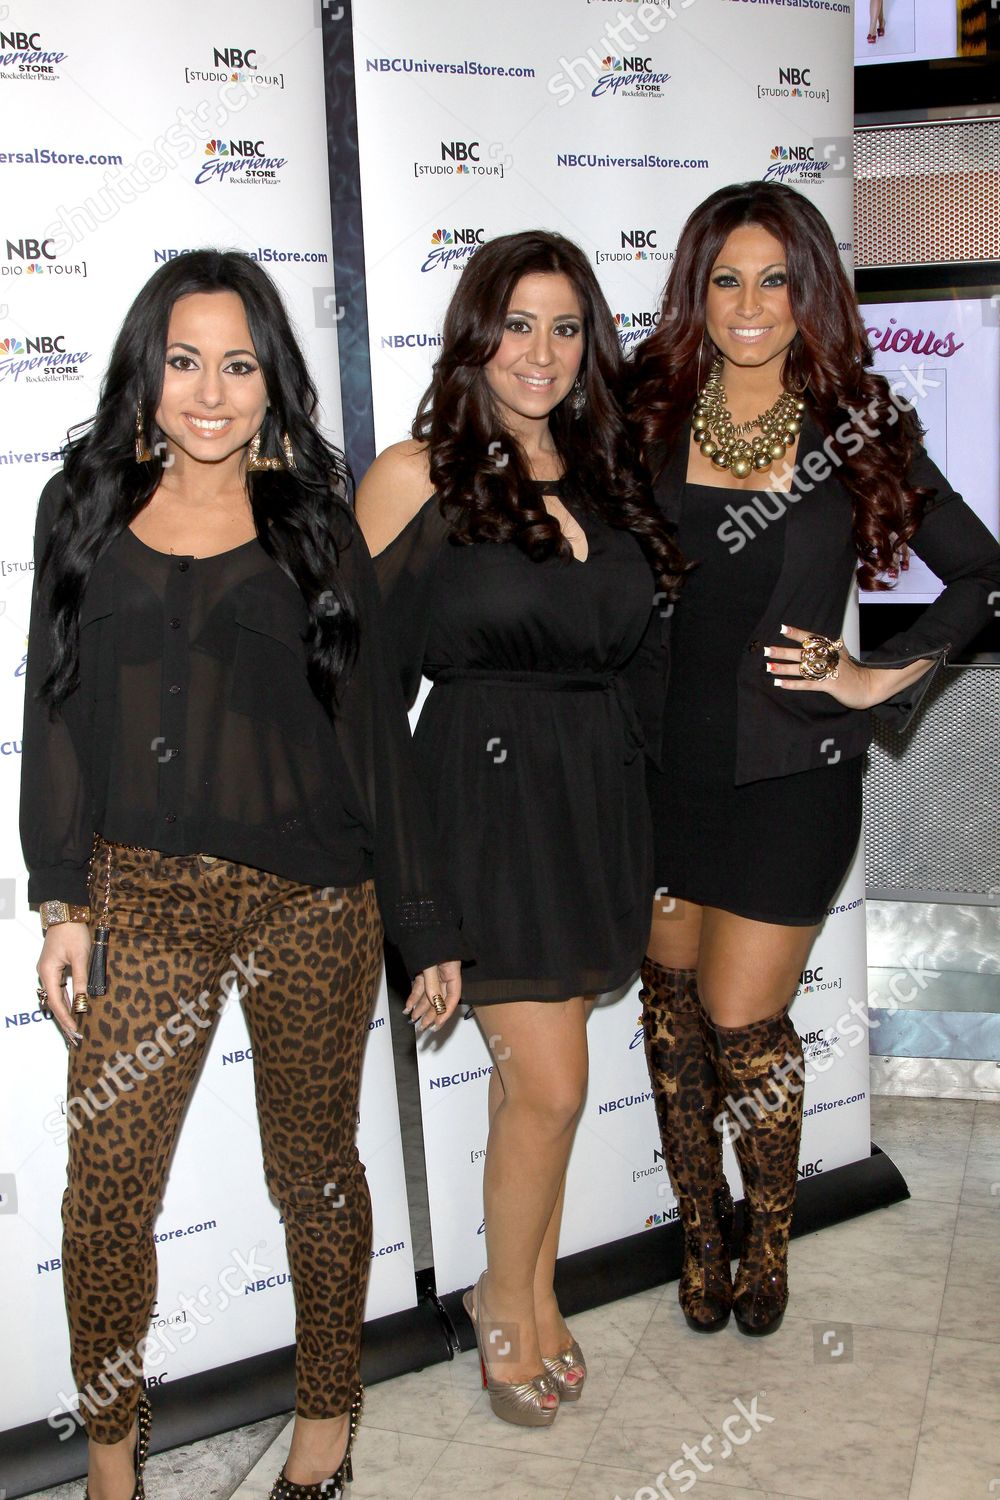 Now olivia jerseylicious How did